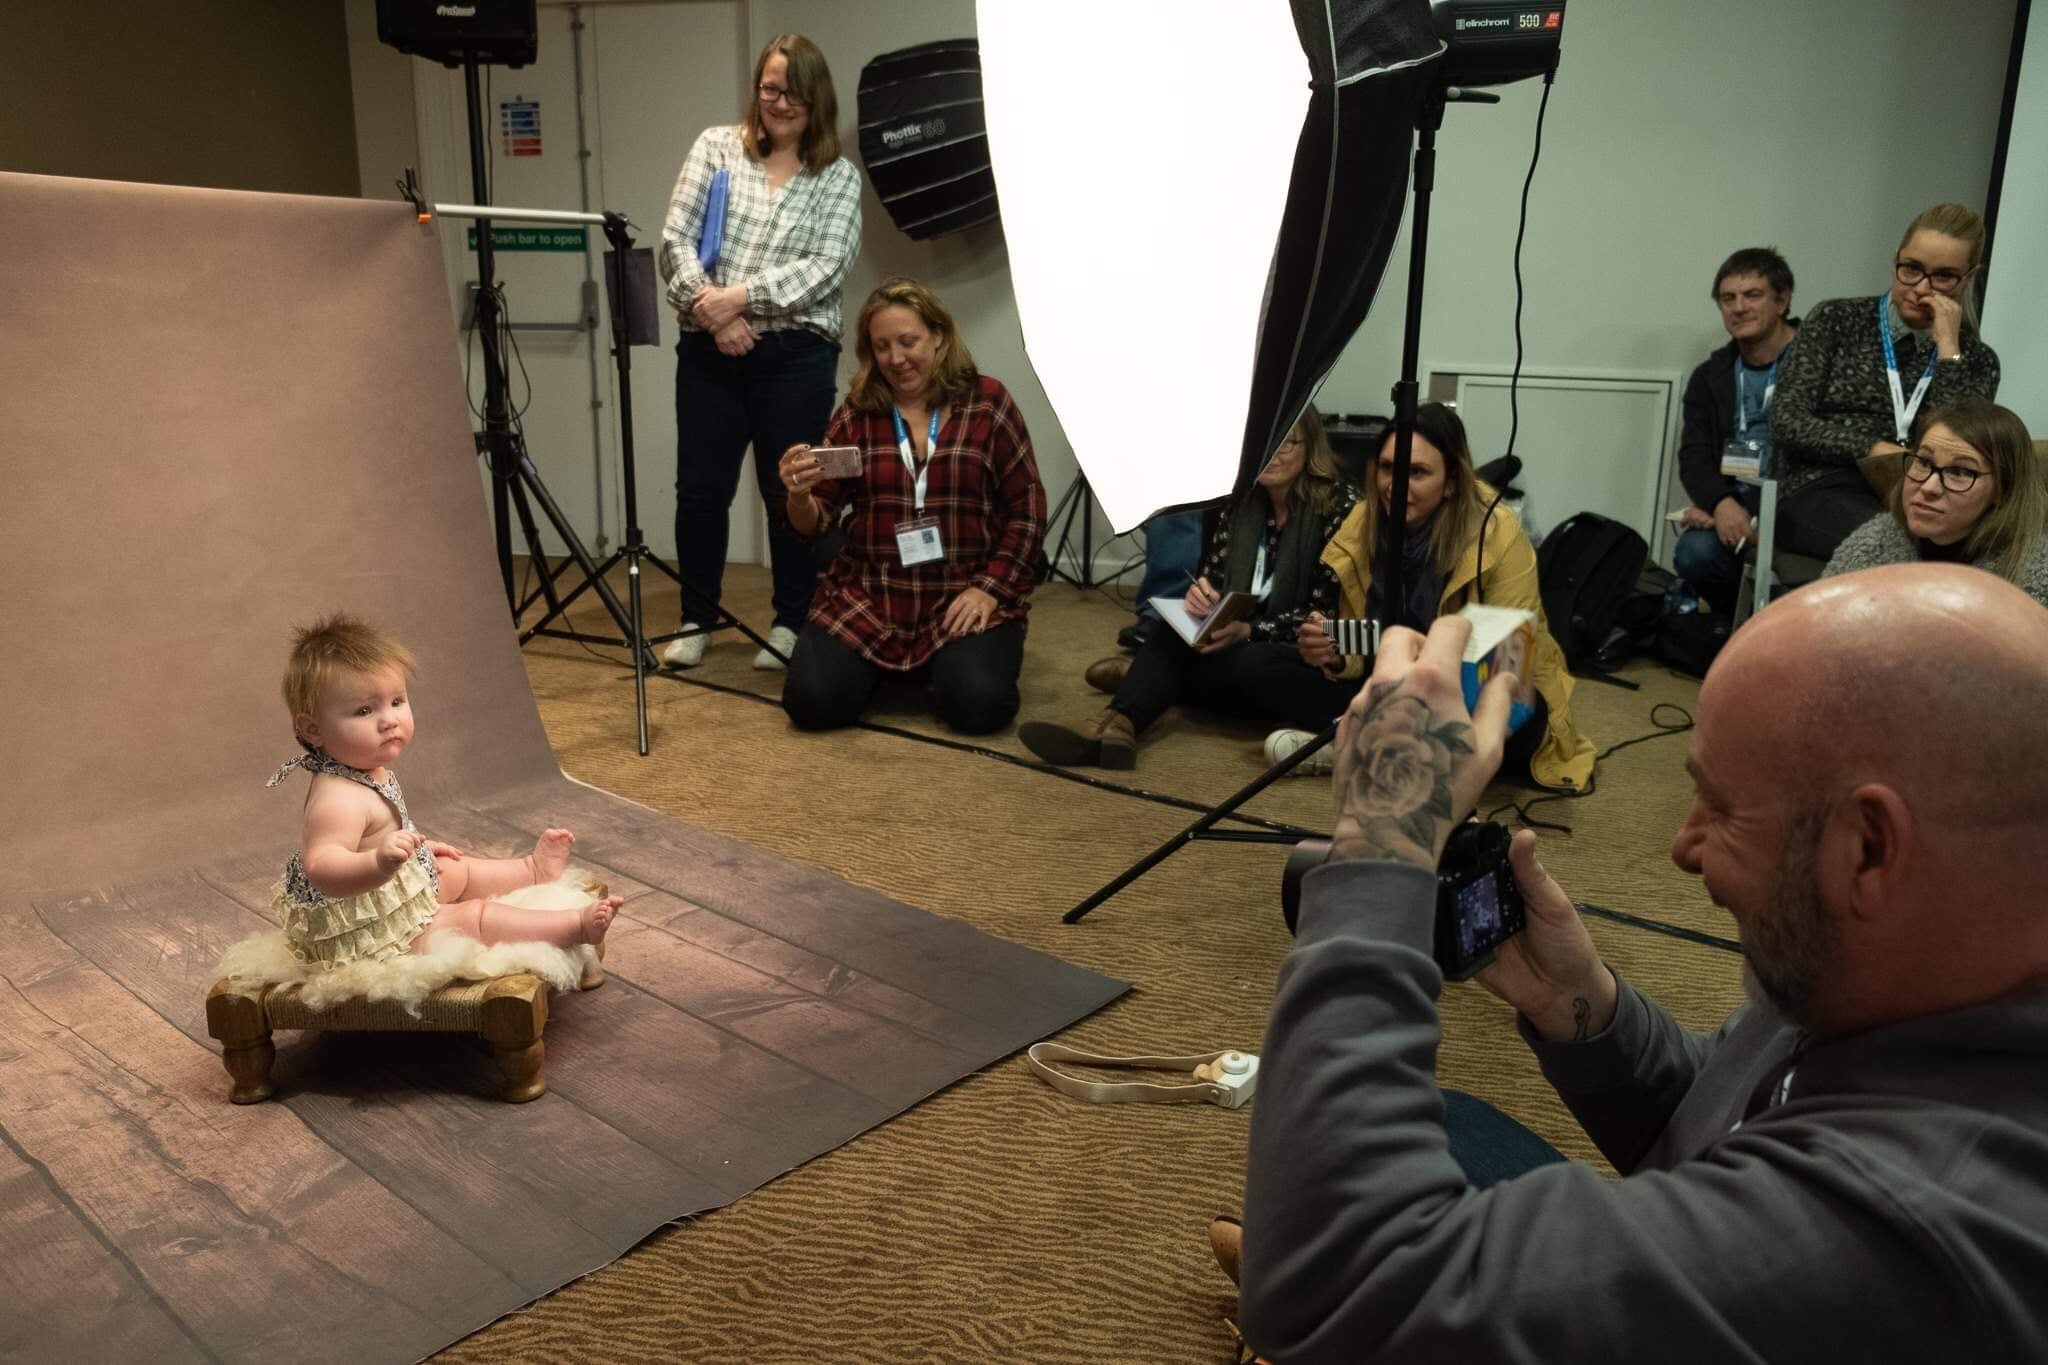 group workshop with baby and one light in Studio lighting training